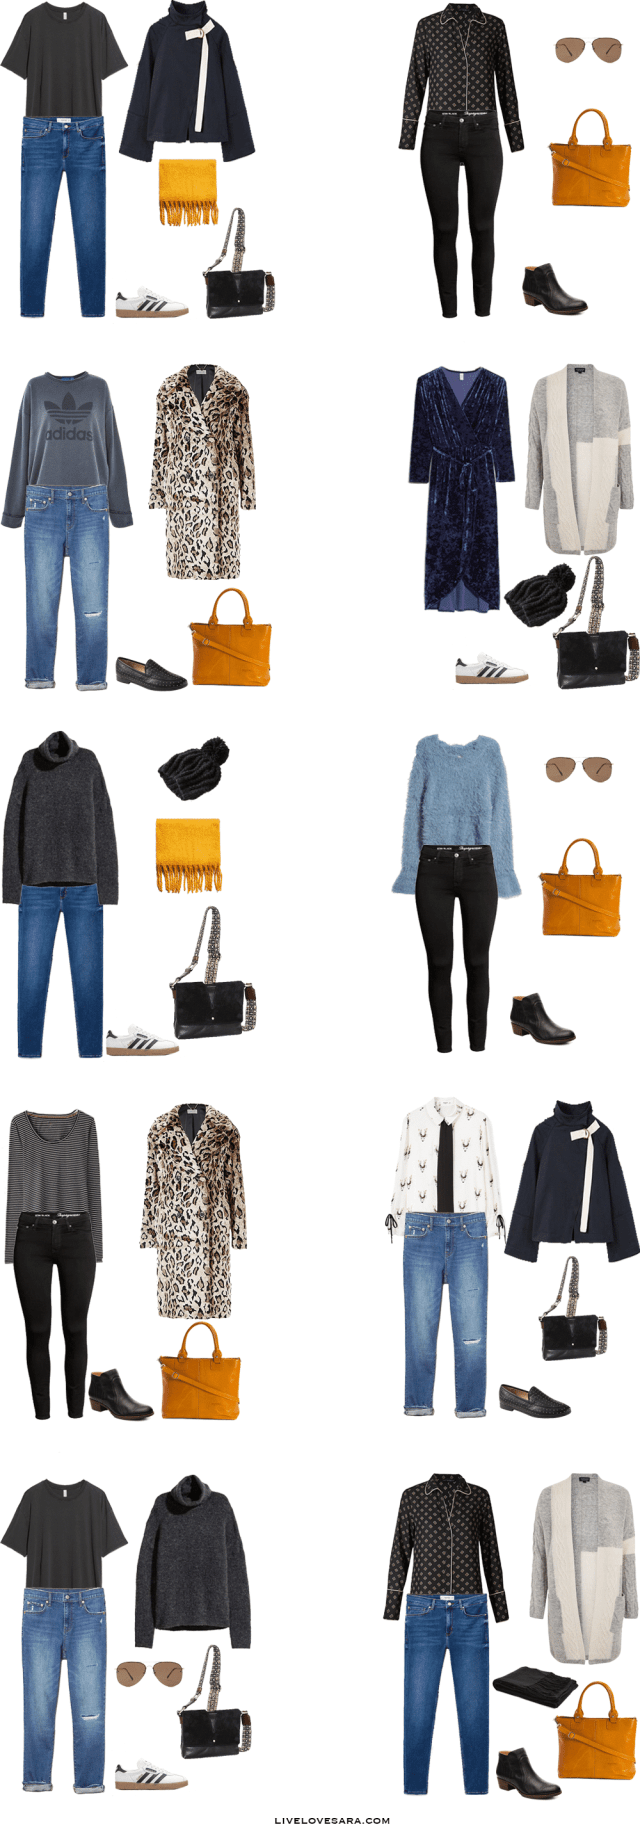 What to Pack for Berlin, Germany Packing Light List Outfit Options 11-20